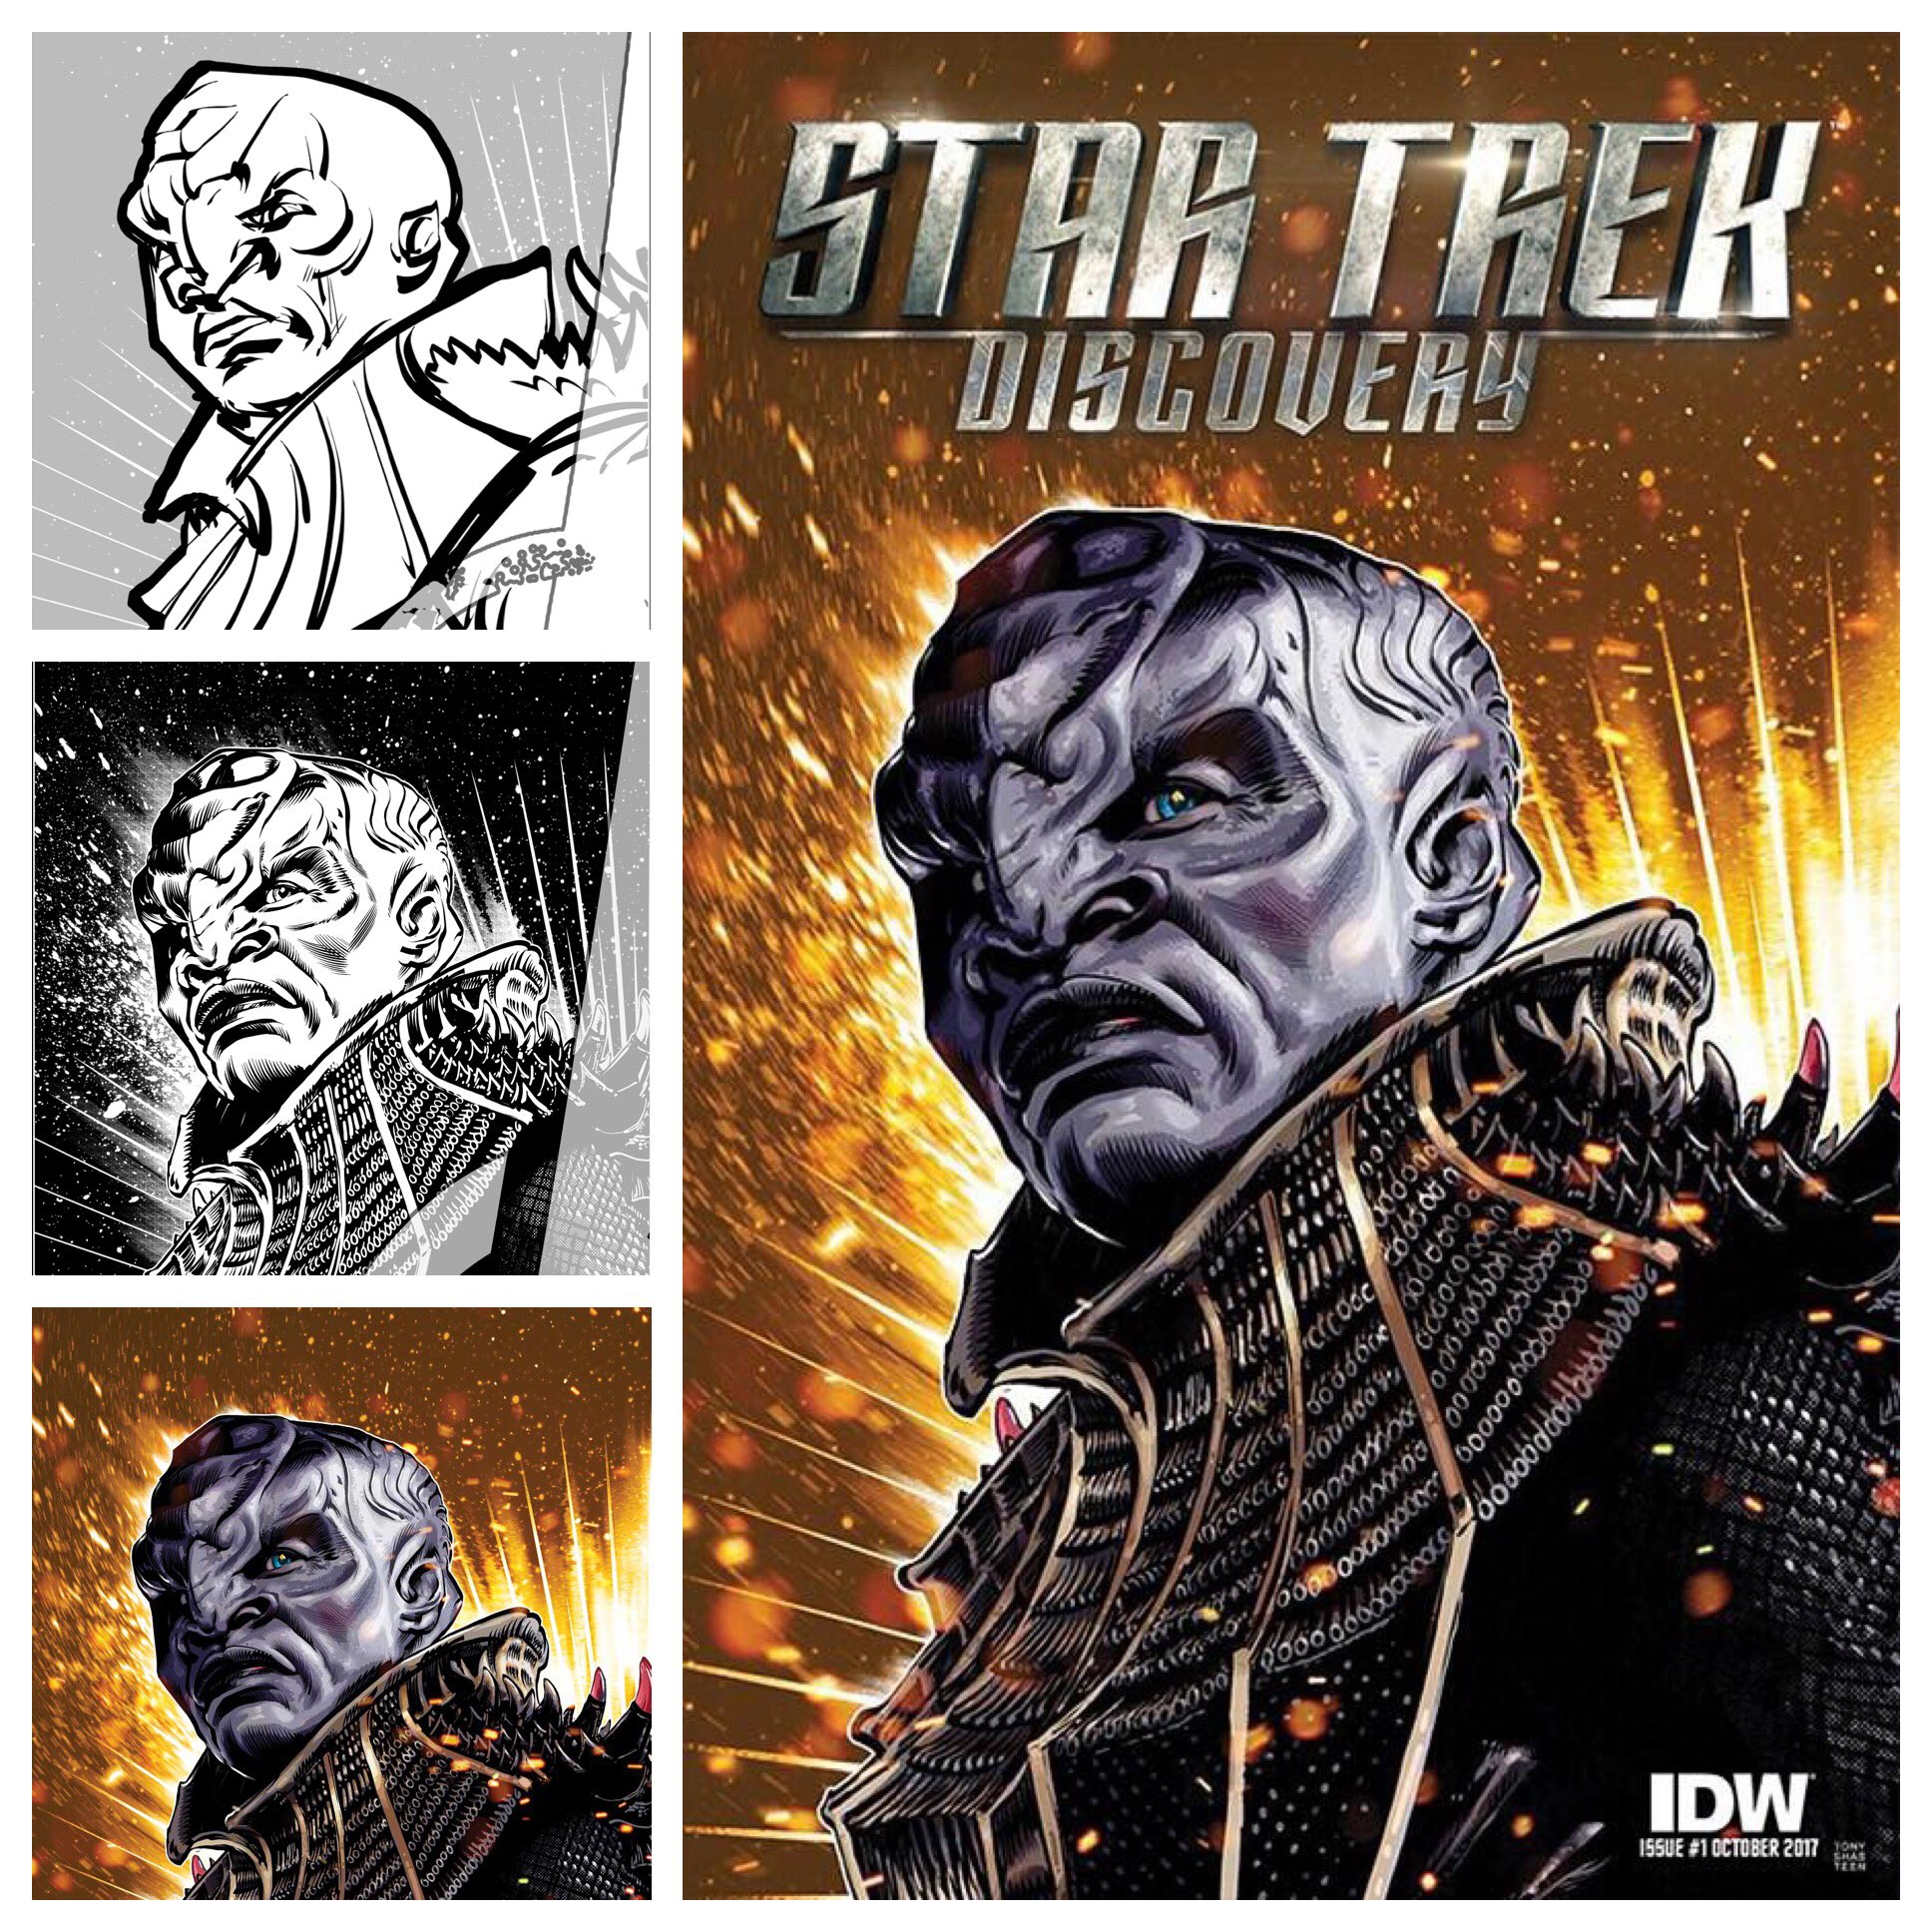 Shasteen's process for creating the cover for  the new Star Trek: Discovery comic book